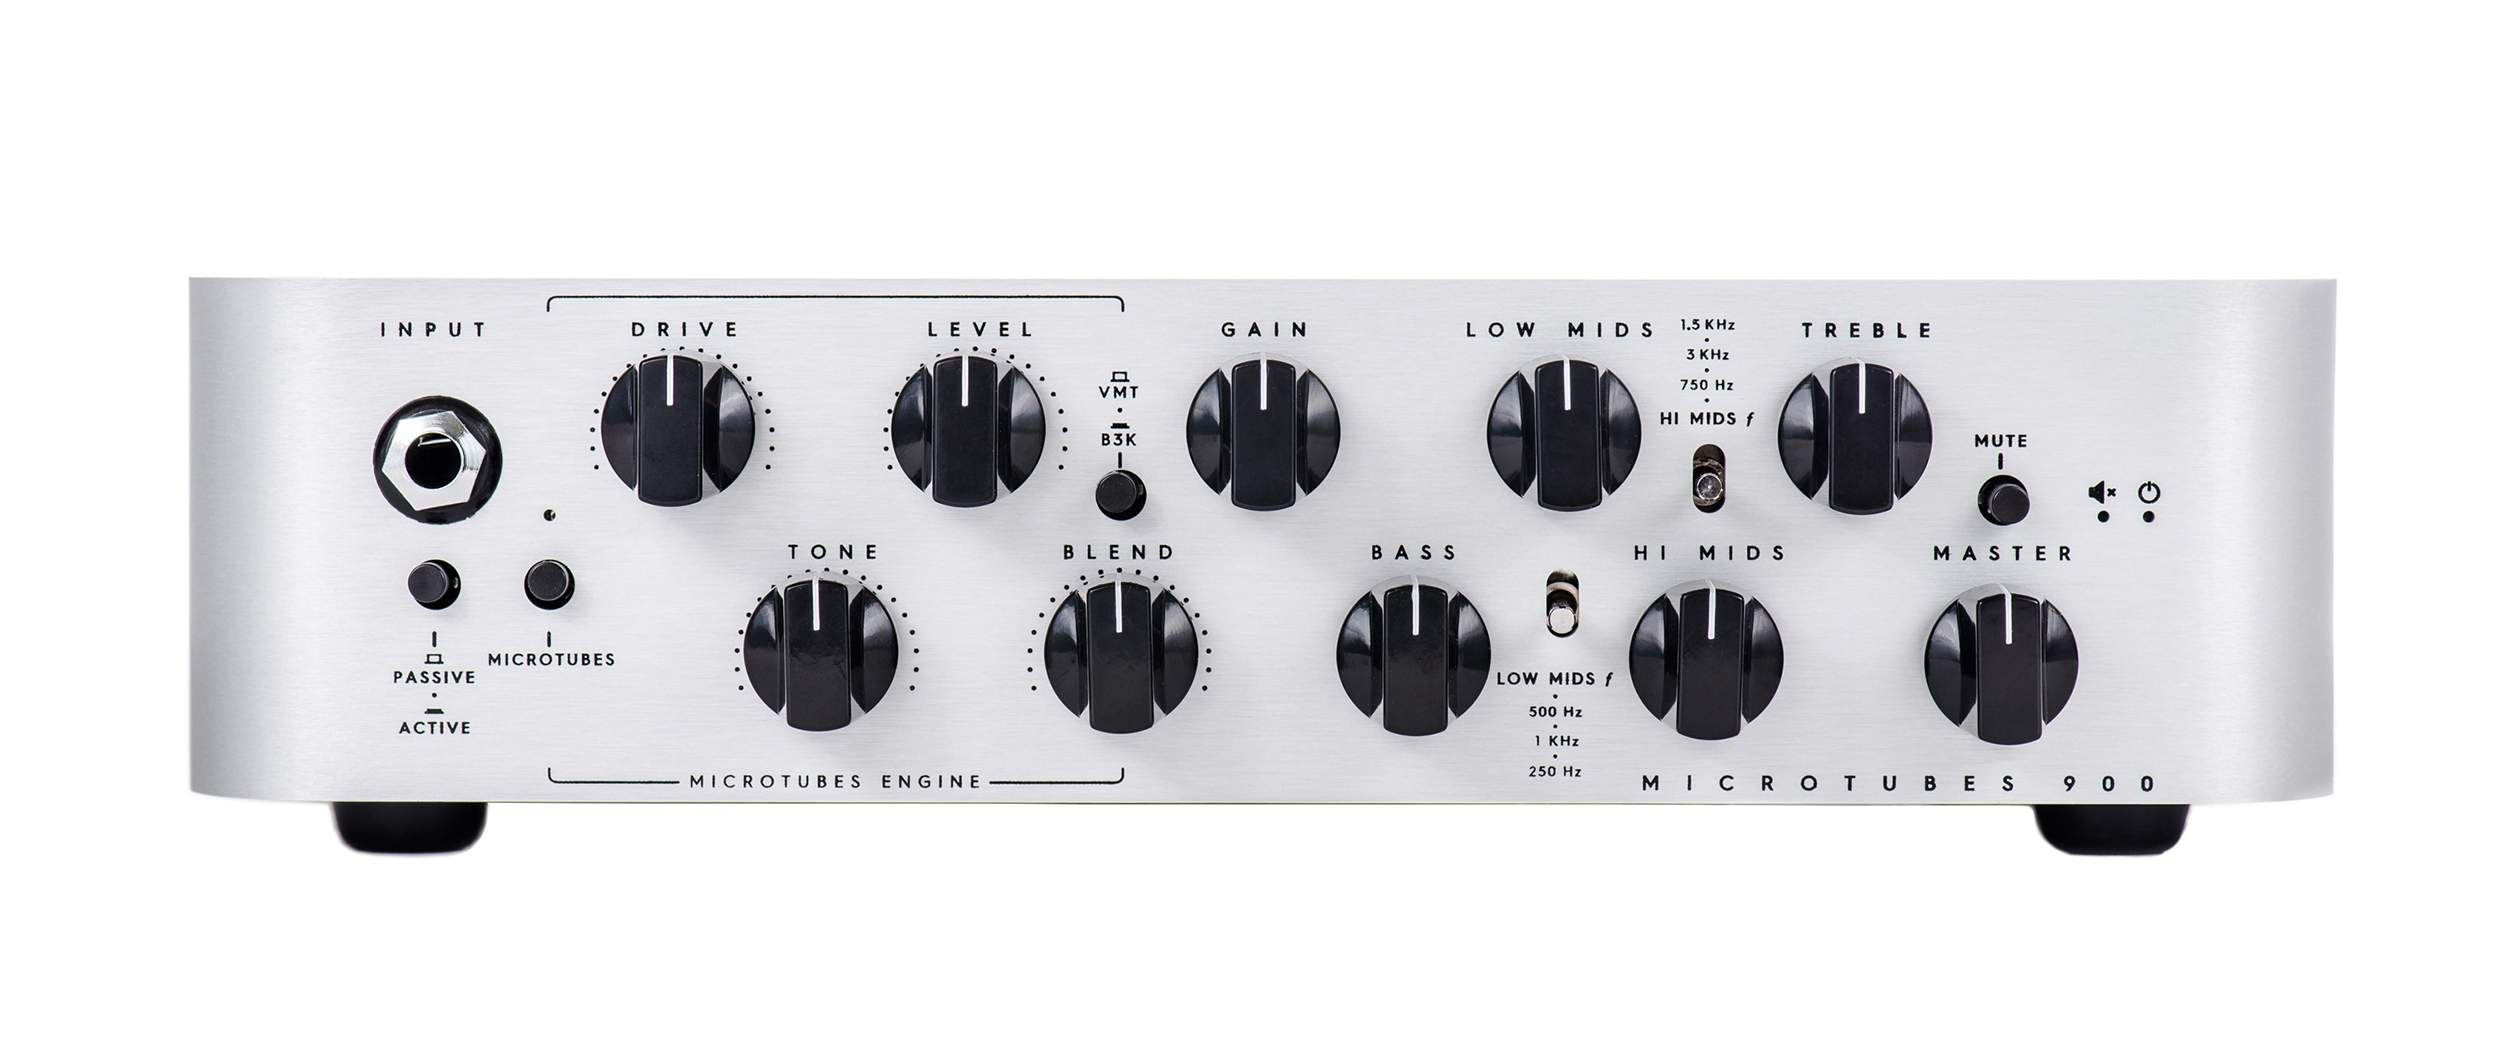 Microtubes 900 - Front Panel.jpg